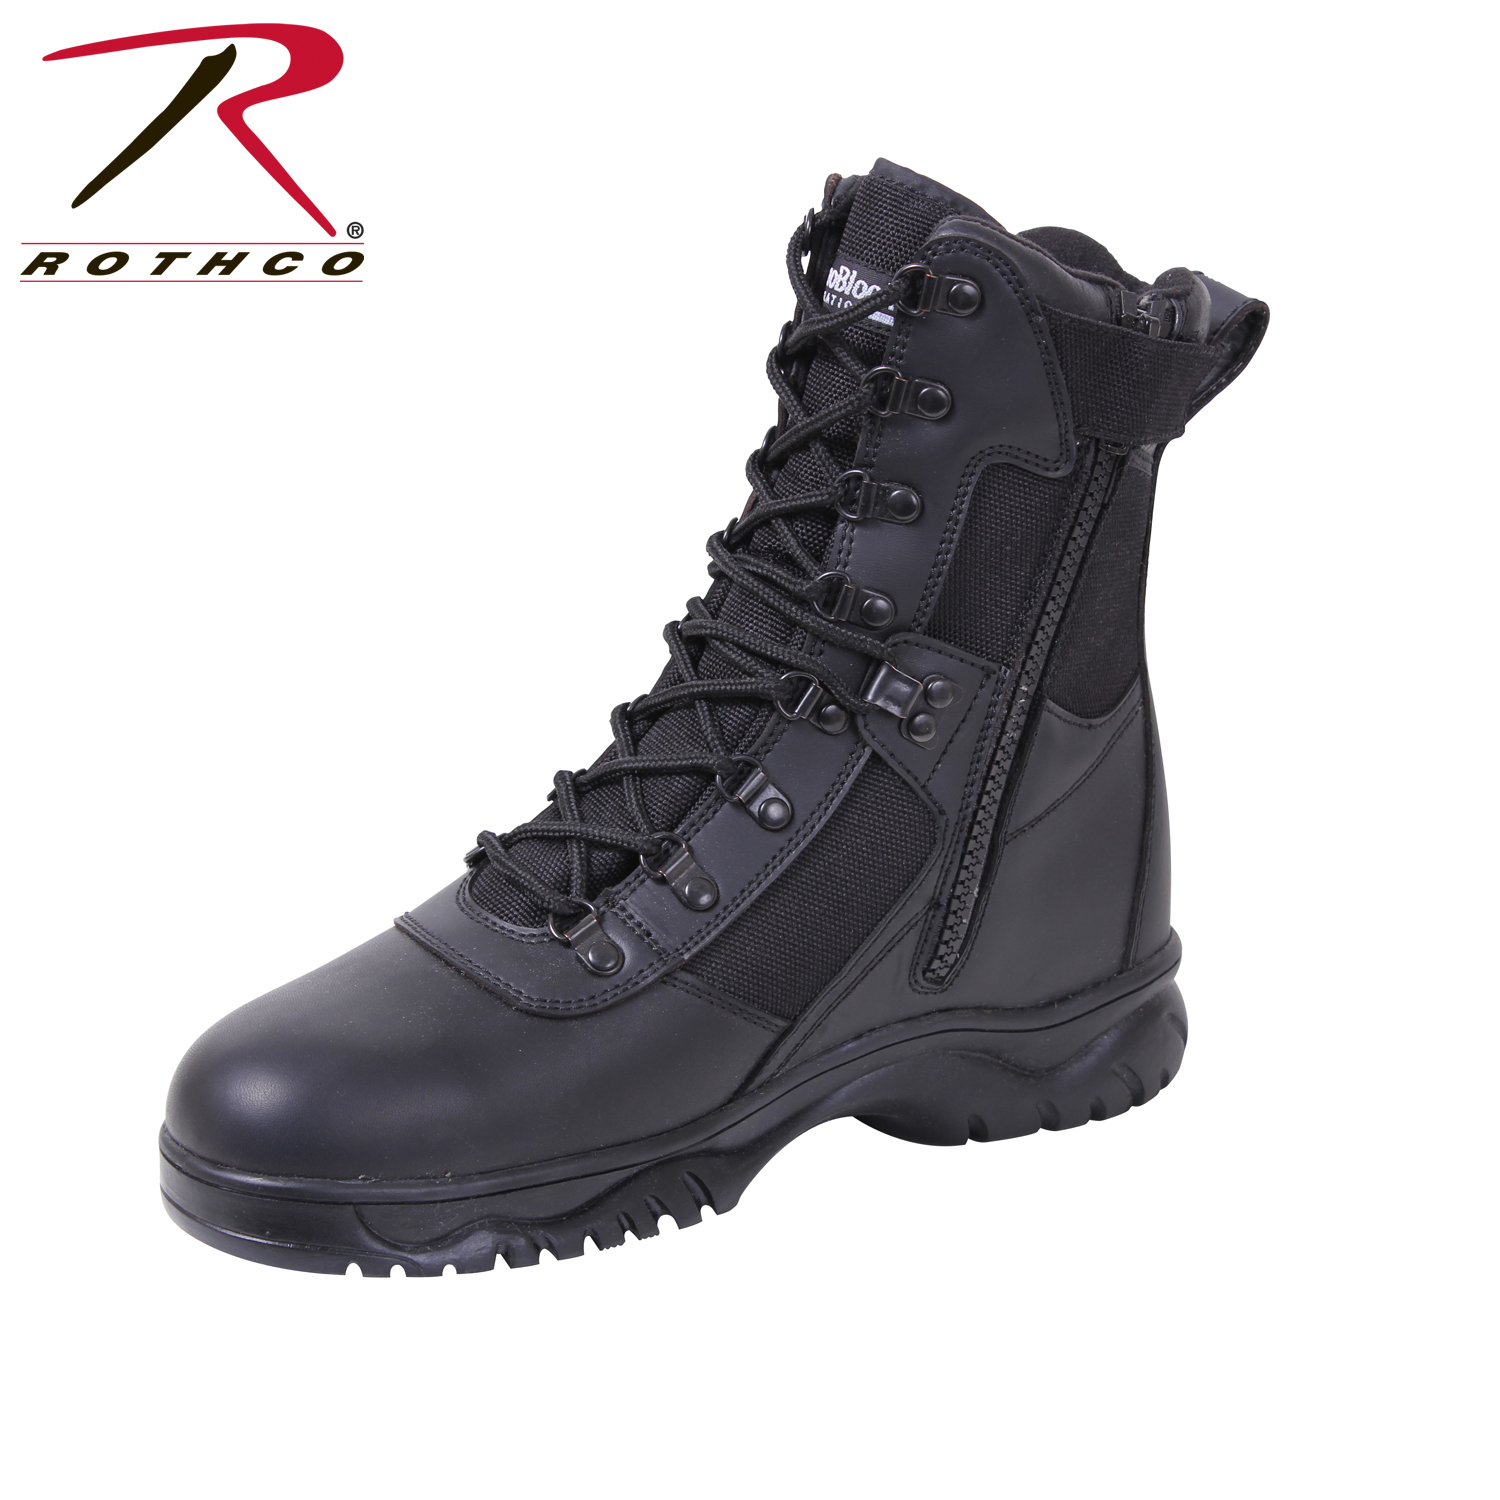 Image result for Rothco Insulated 8 Inch Side Zip Tactical Boot